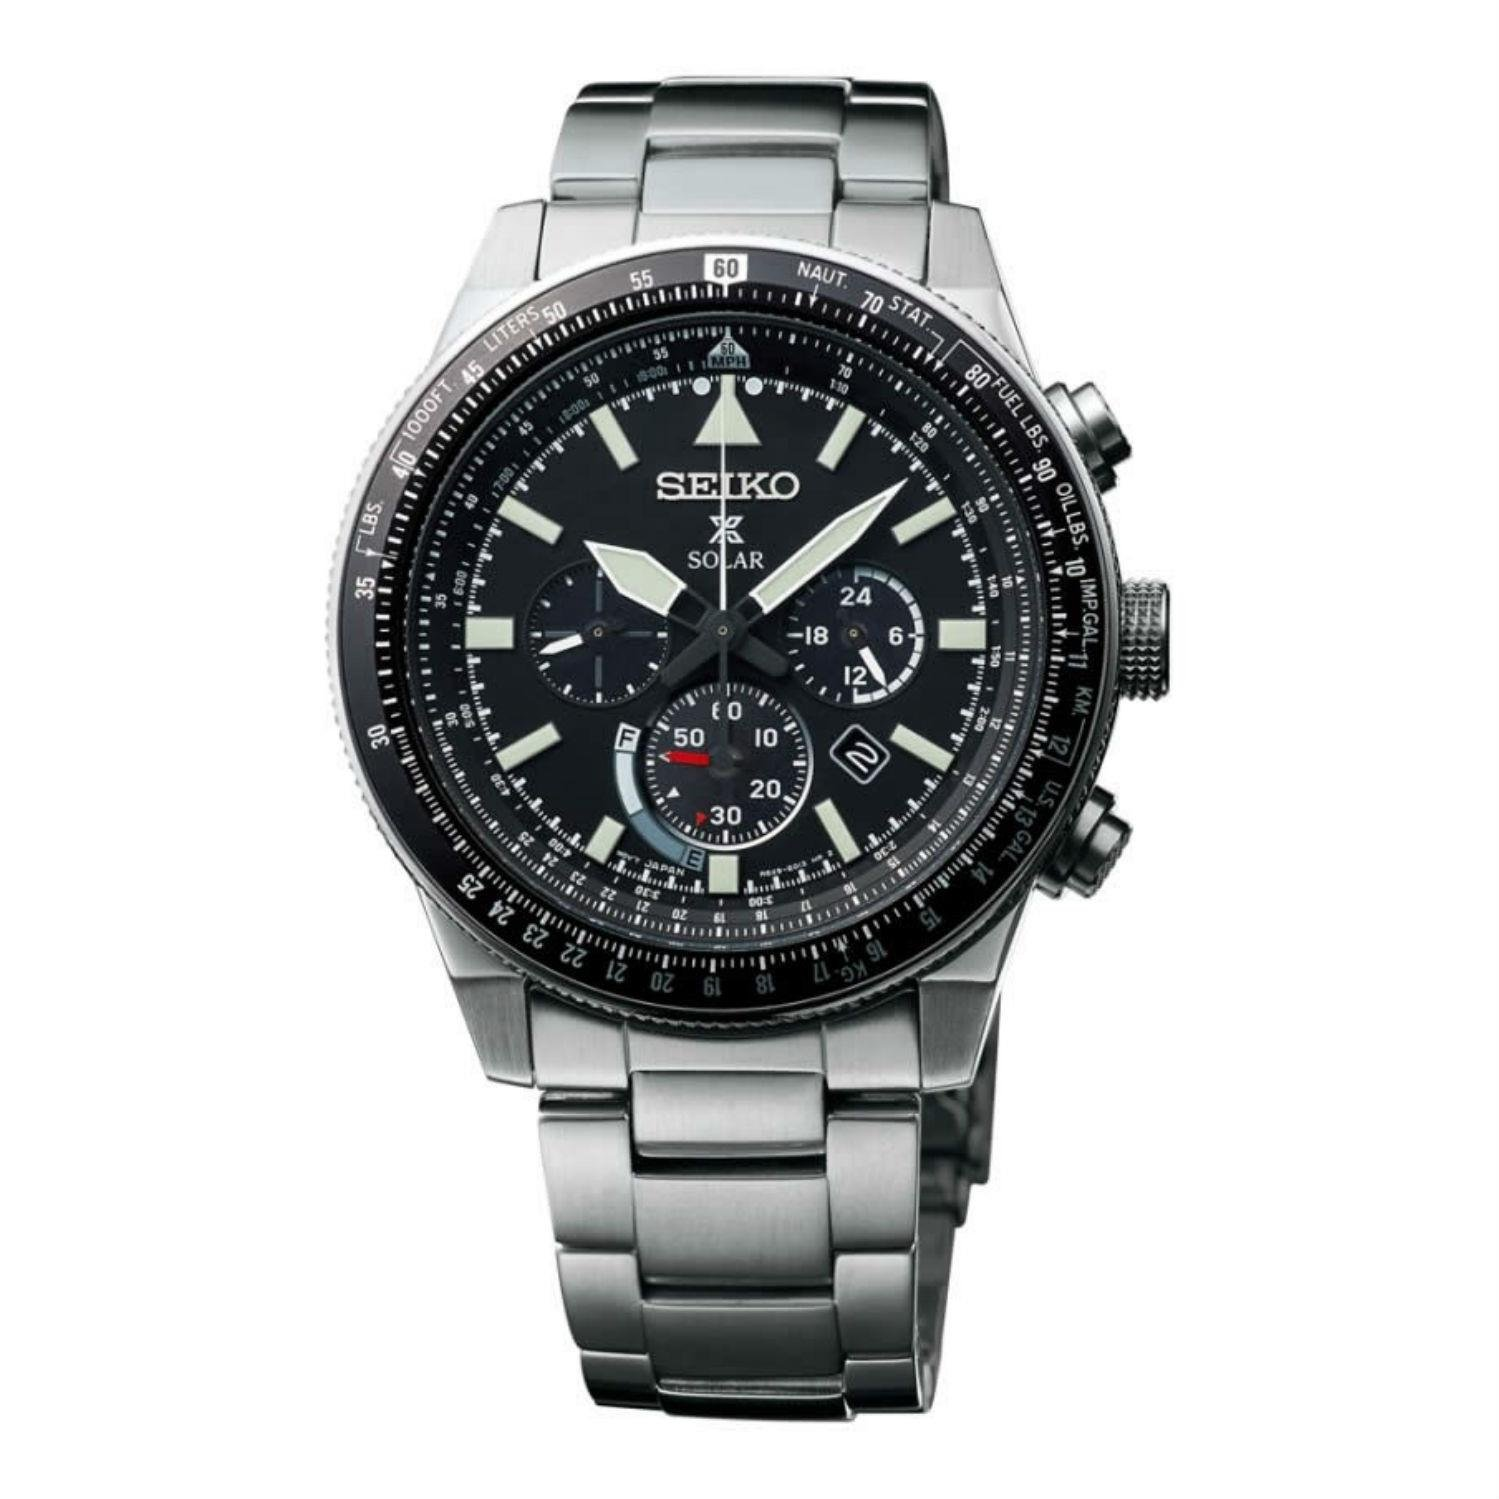 Amazon.com: Seiko prospex SSC607P1 Mens japanese-automatic watch: Watches